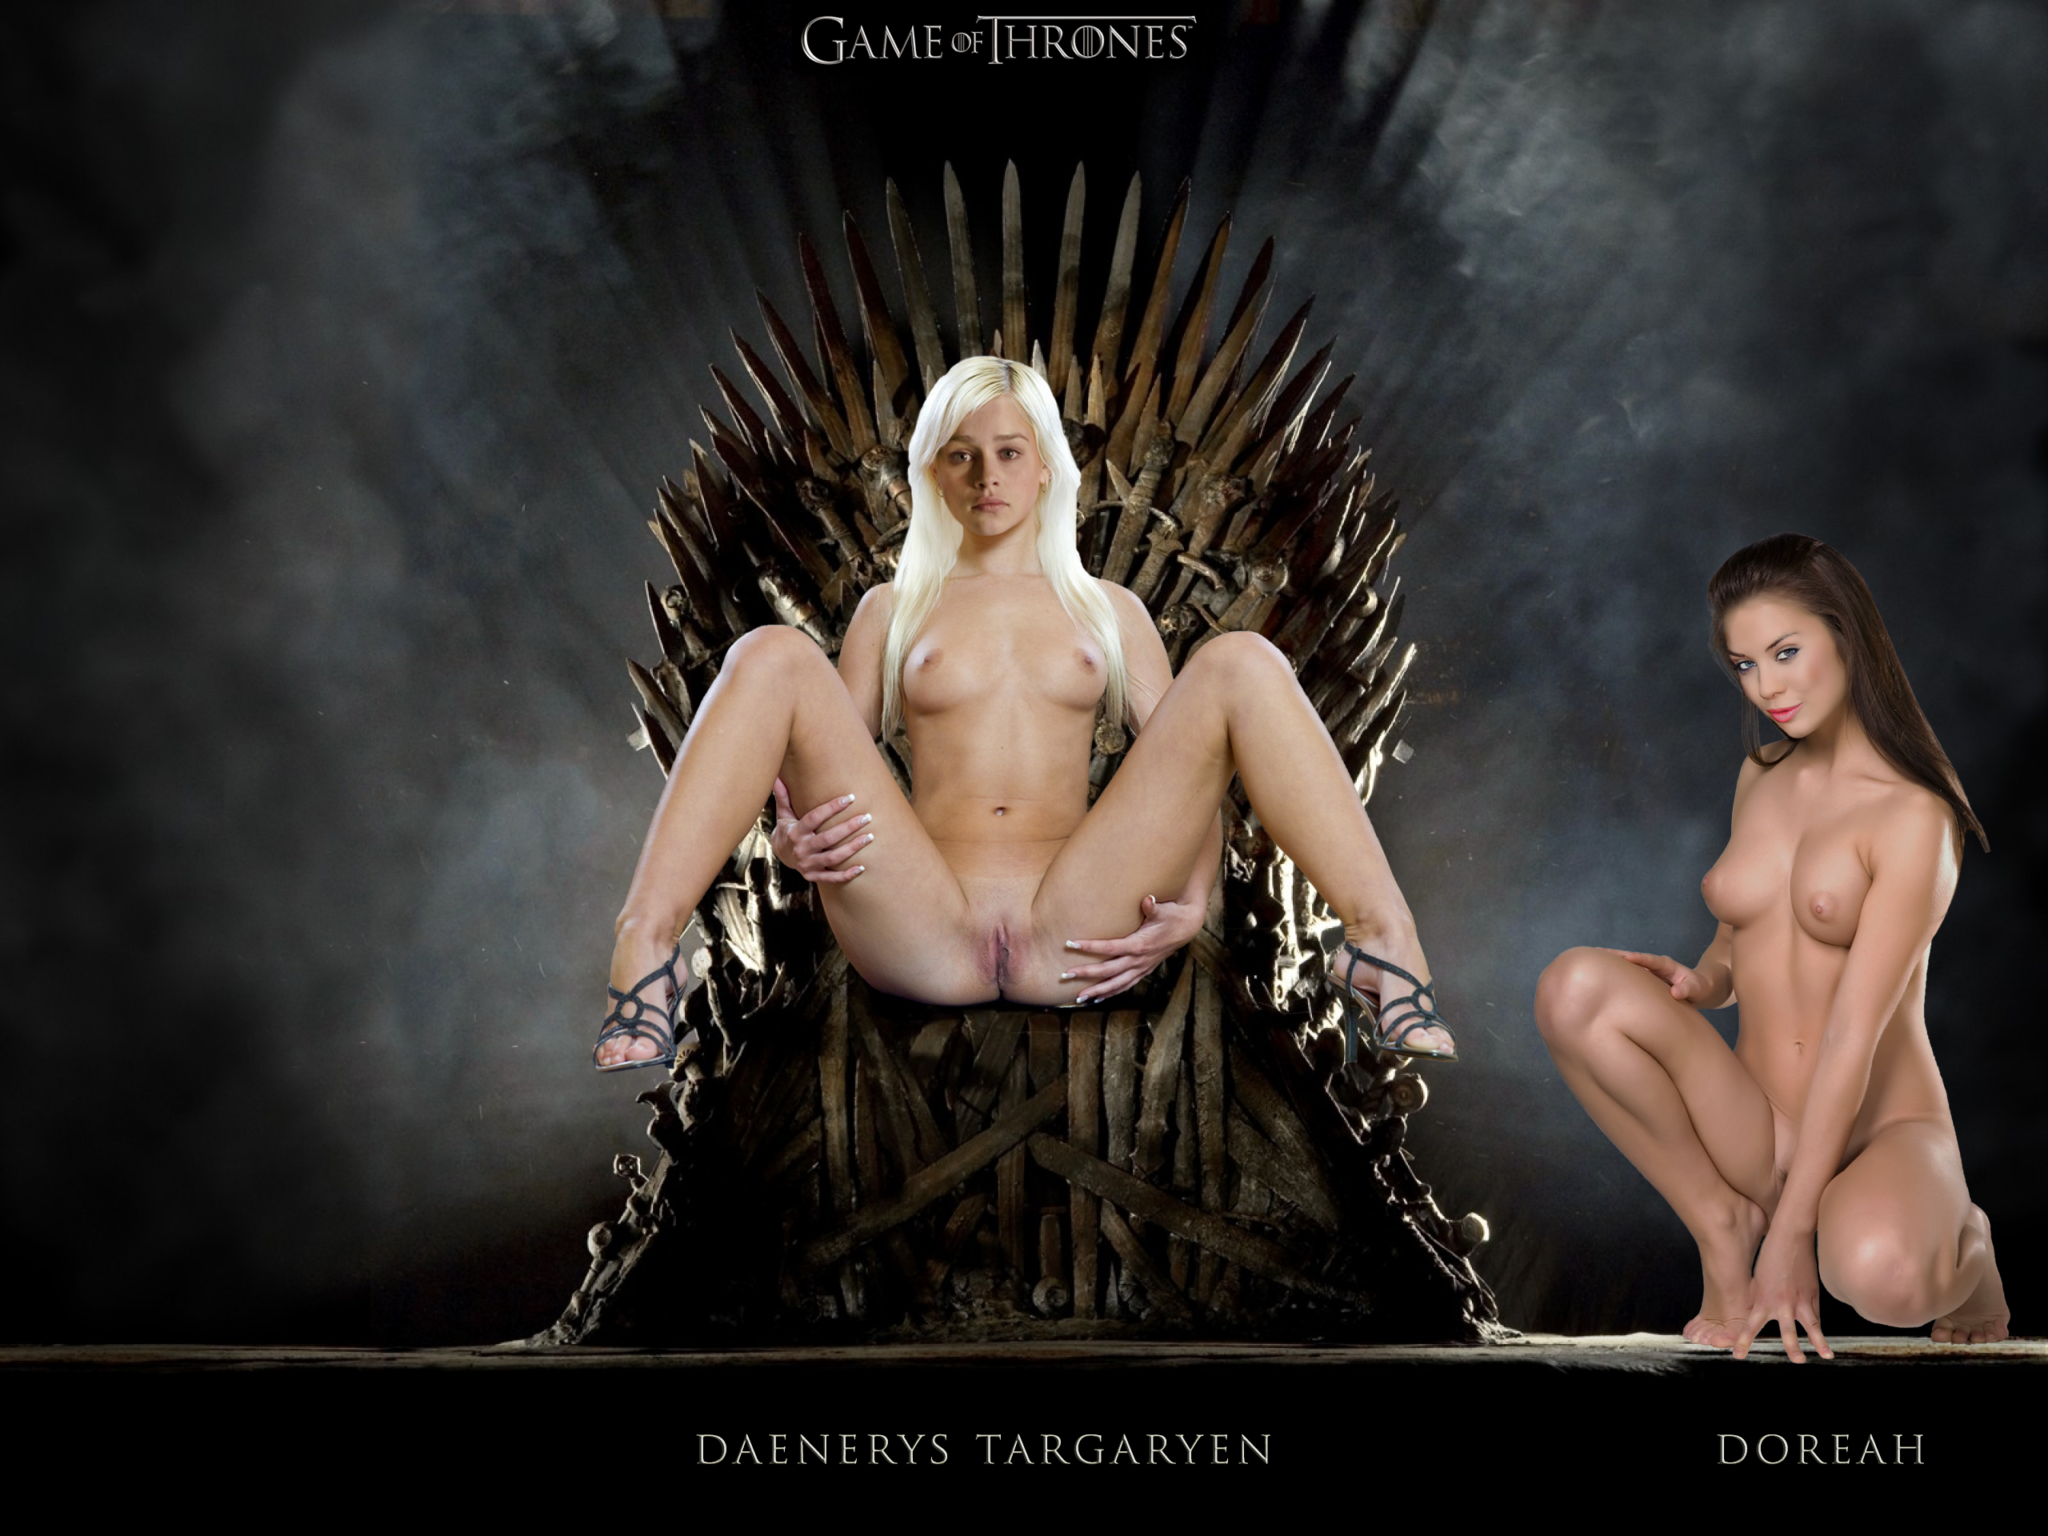 game of thrones rule 34